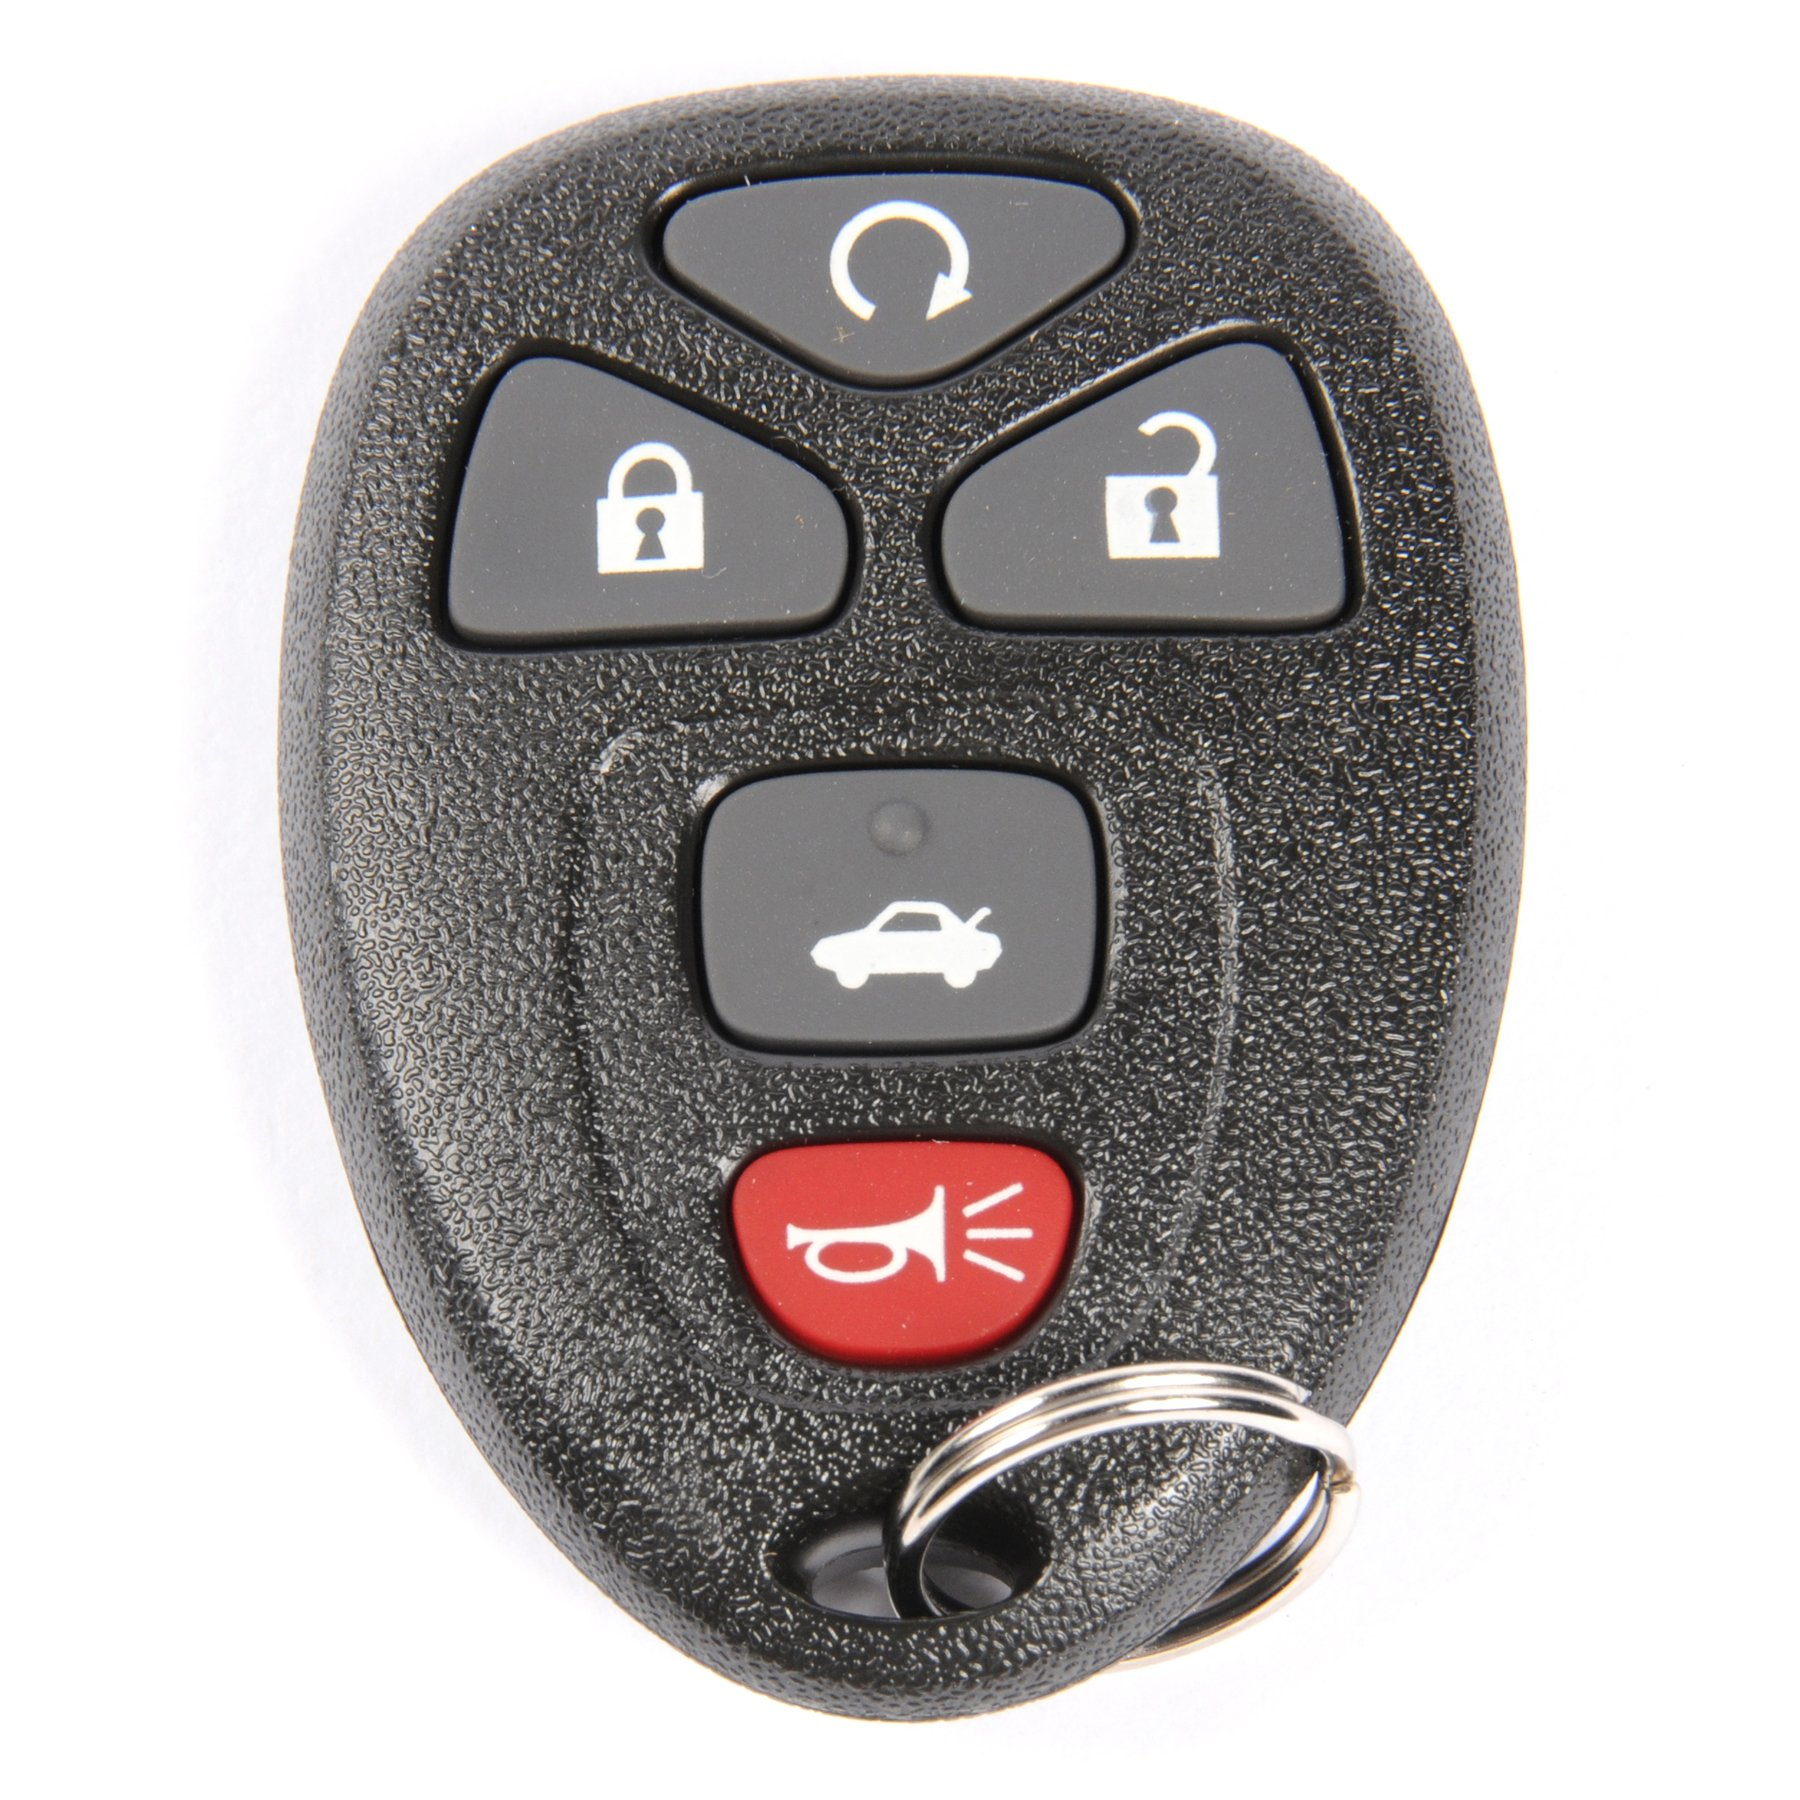 ACDelco 22733524 GM Original Equipment 5 Button Keyless Entry Remote Key Fob by ACDelco